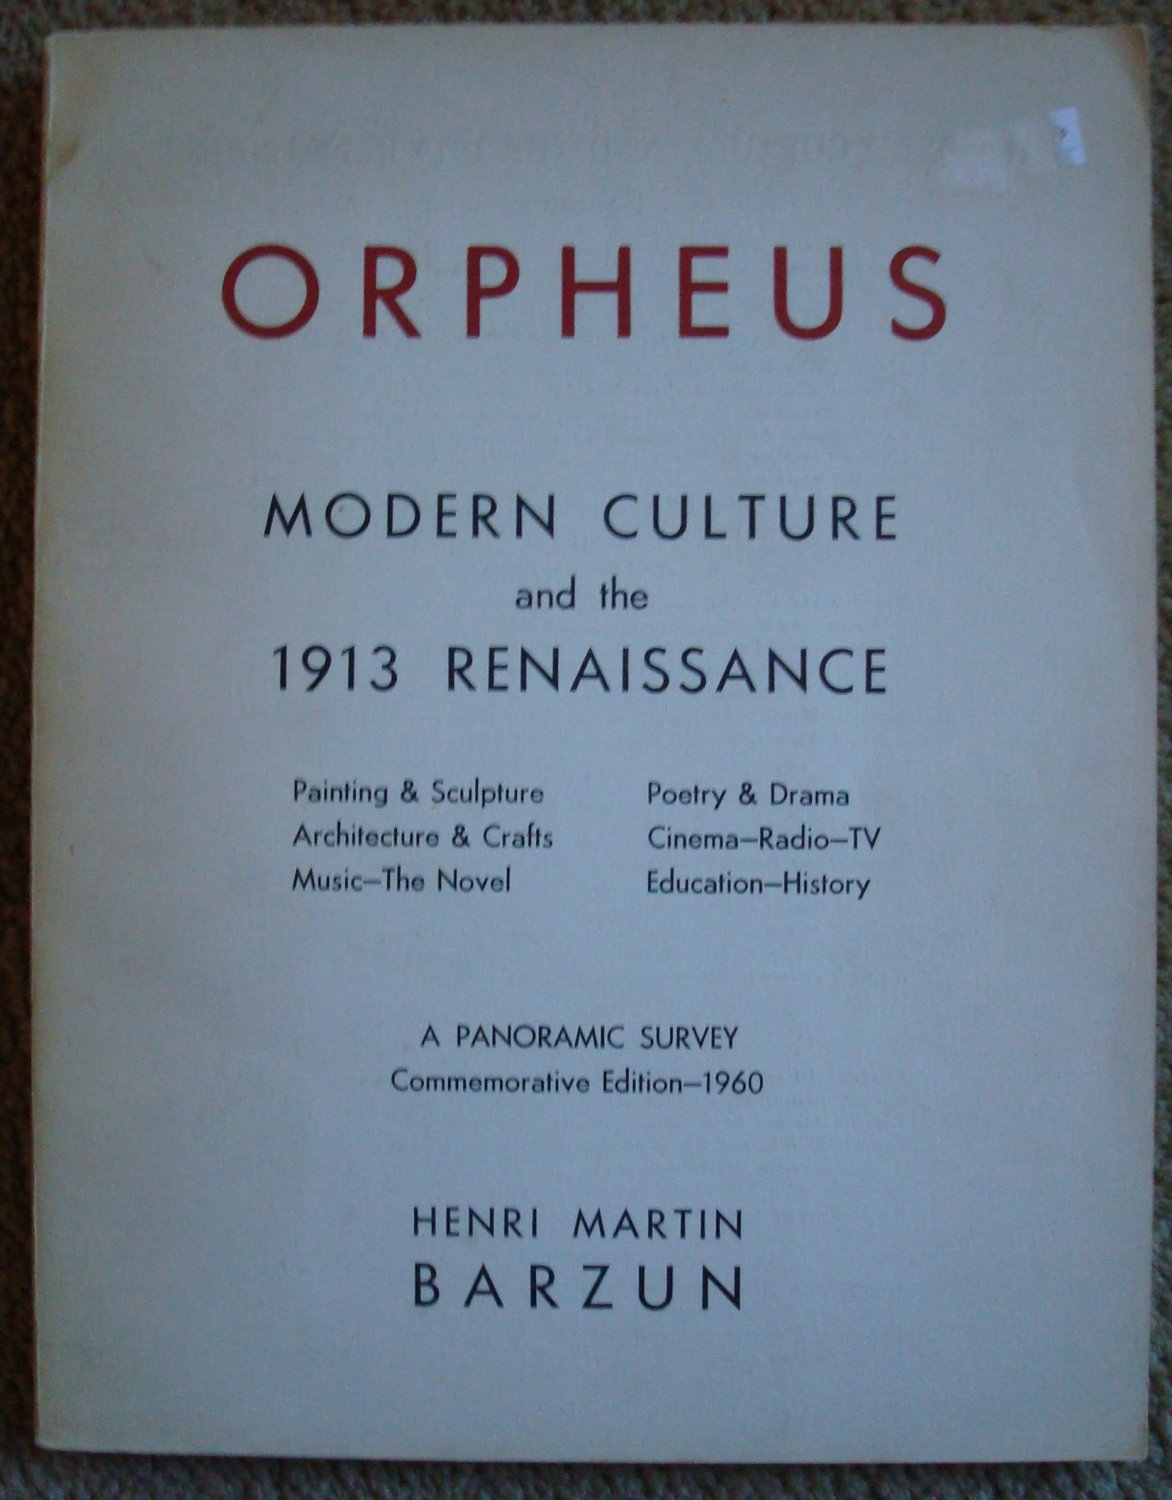 Orpheus: Modern Culture and the 1913 Renaissance